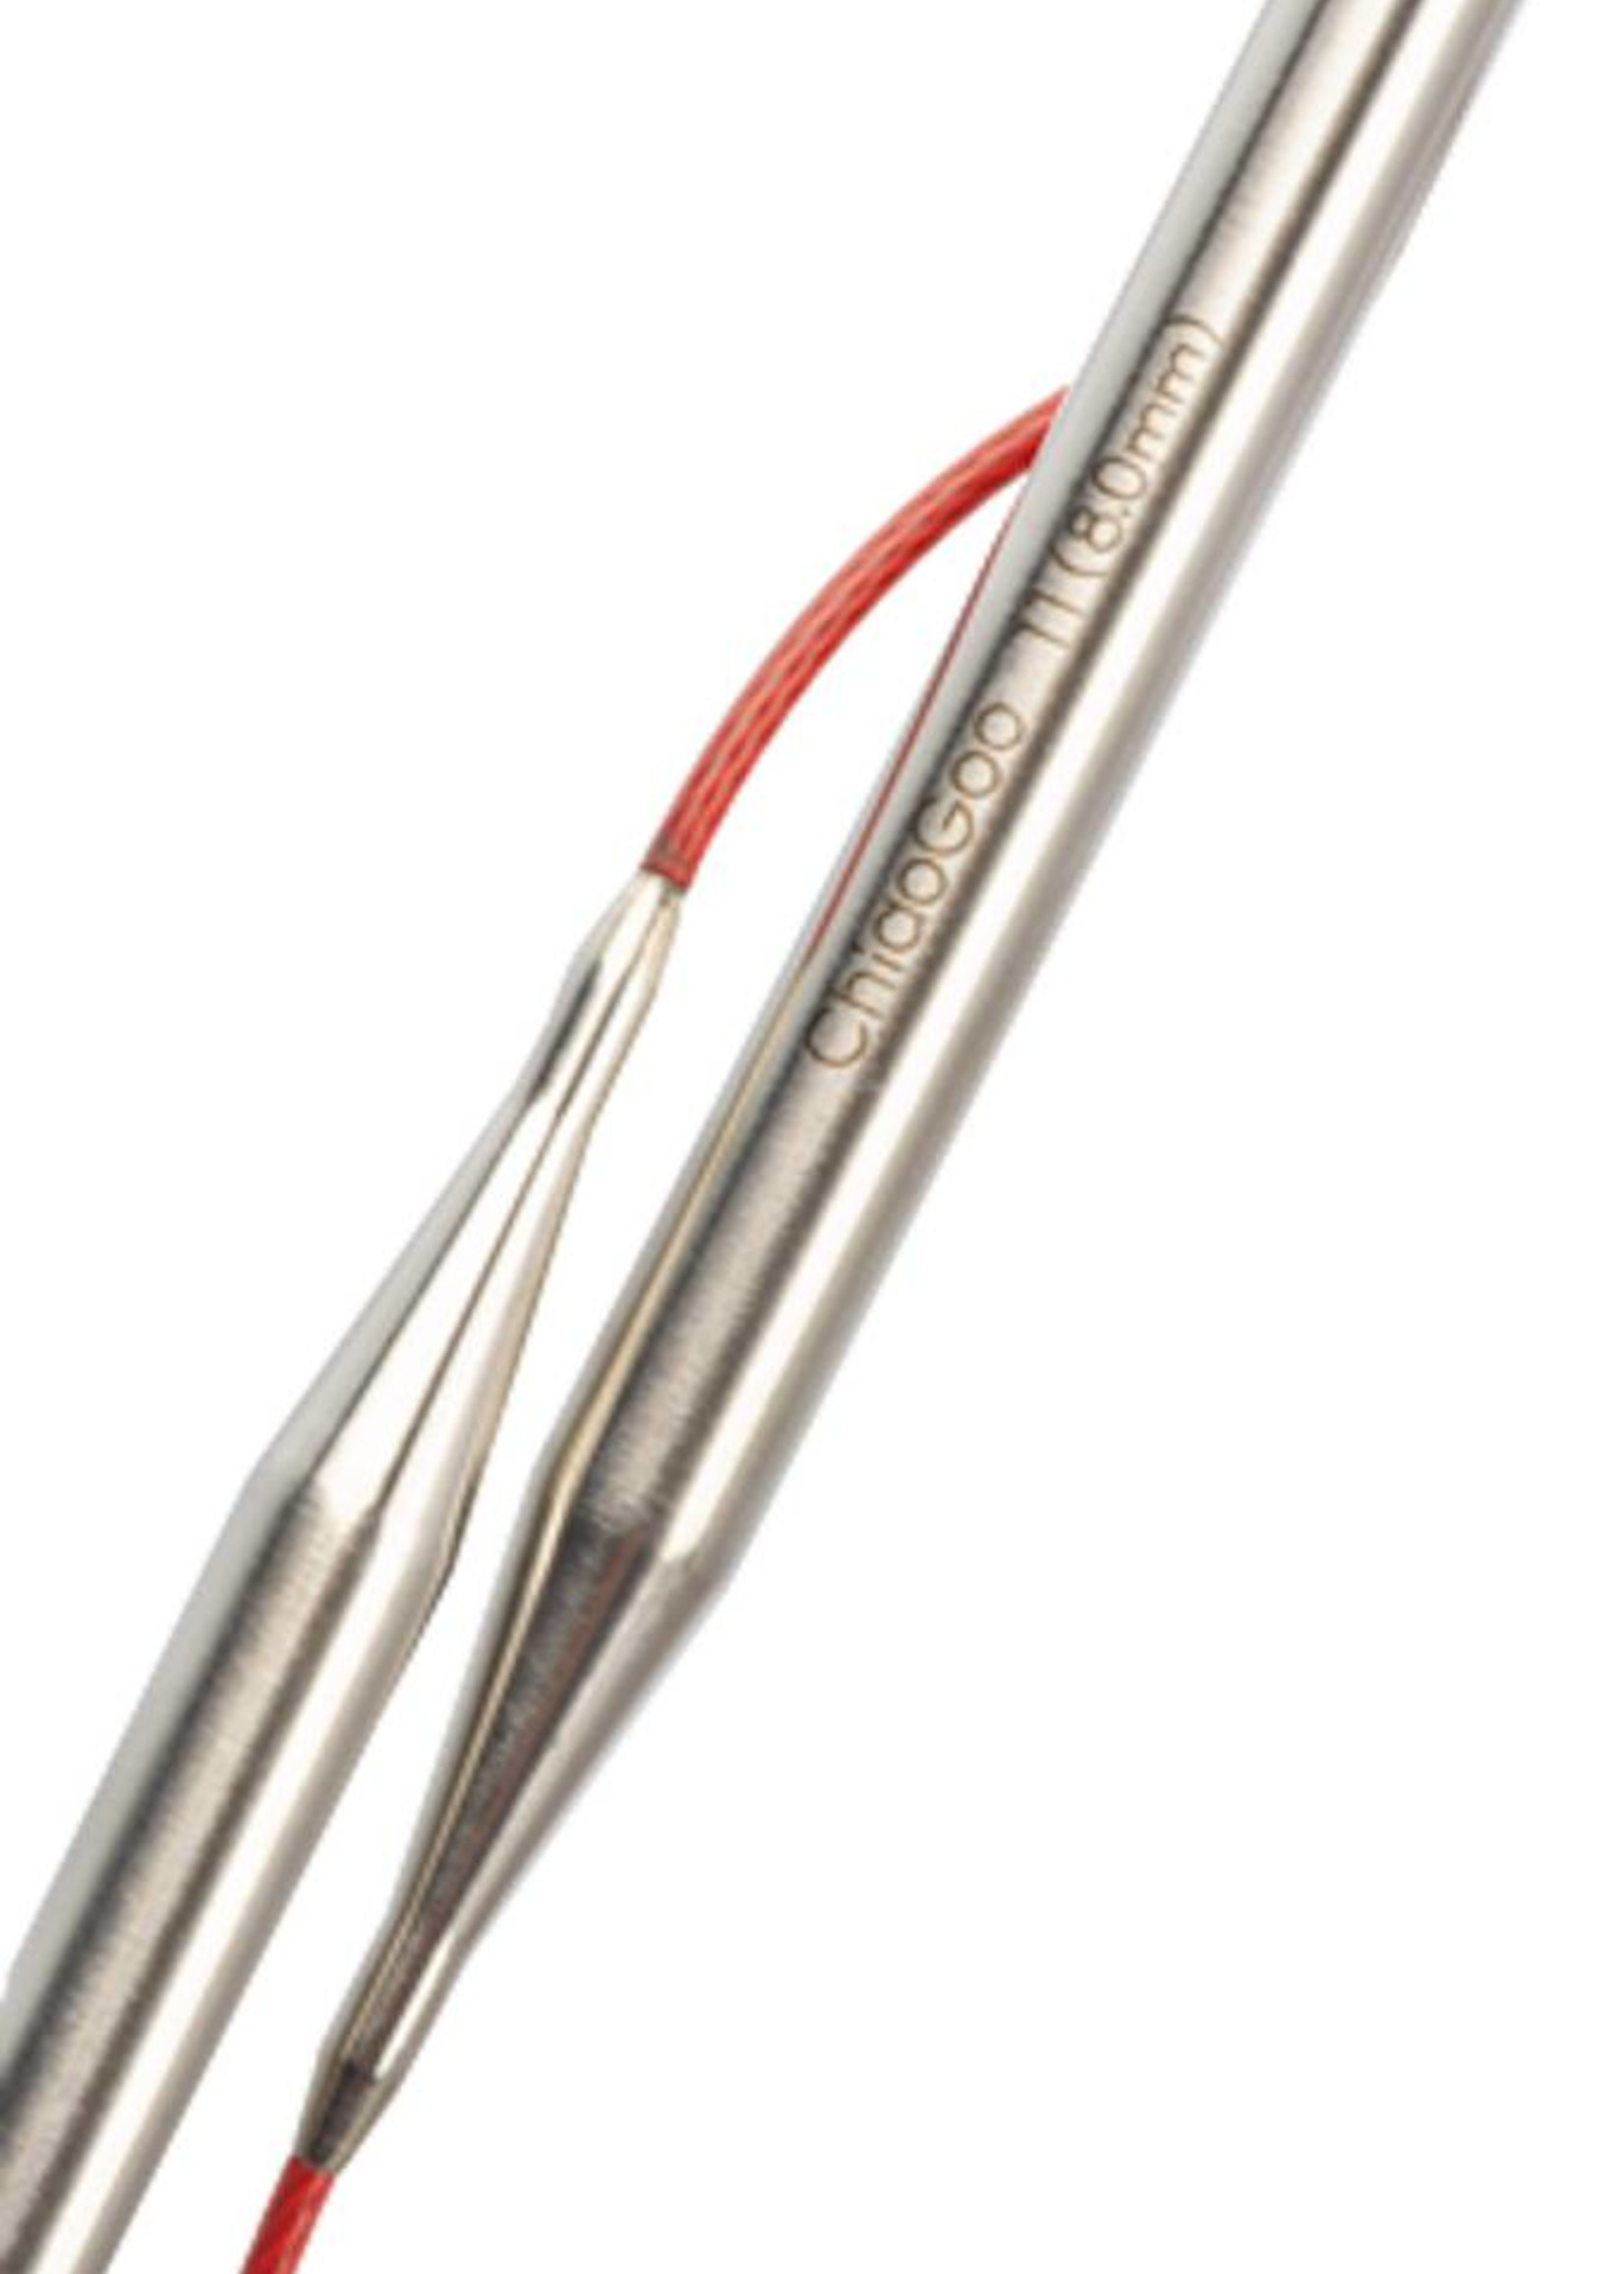 ChiaoGoo Chiao Goo Lace Red Stainless Steel Fixed Circular Needles